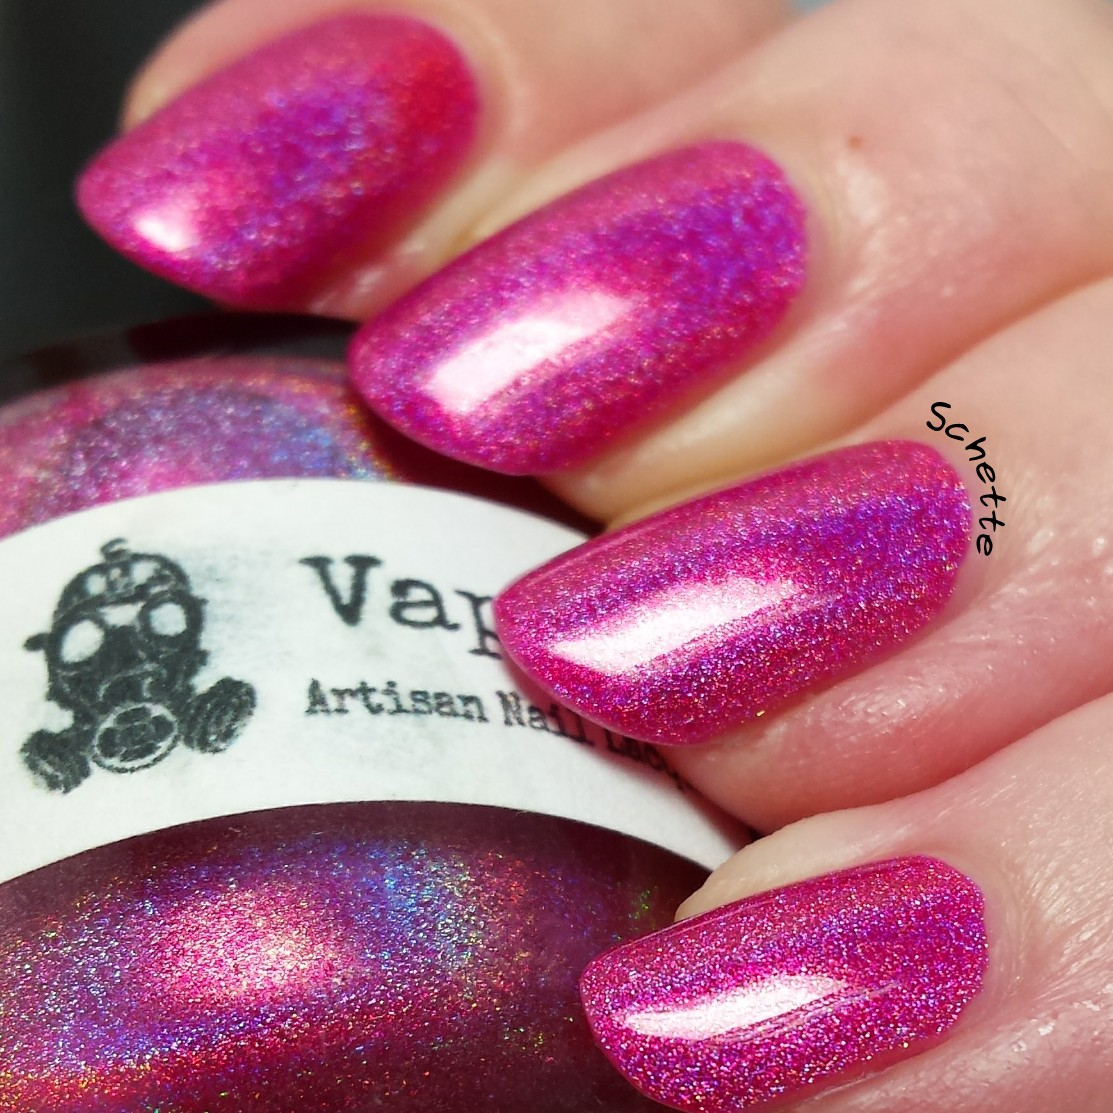 Vapid Lacquer : Original Sin, Mistrust, Chick fight